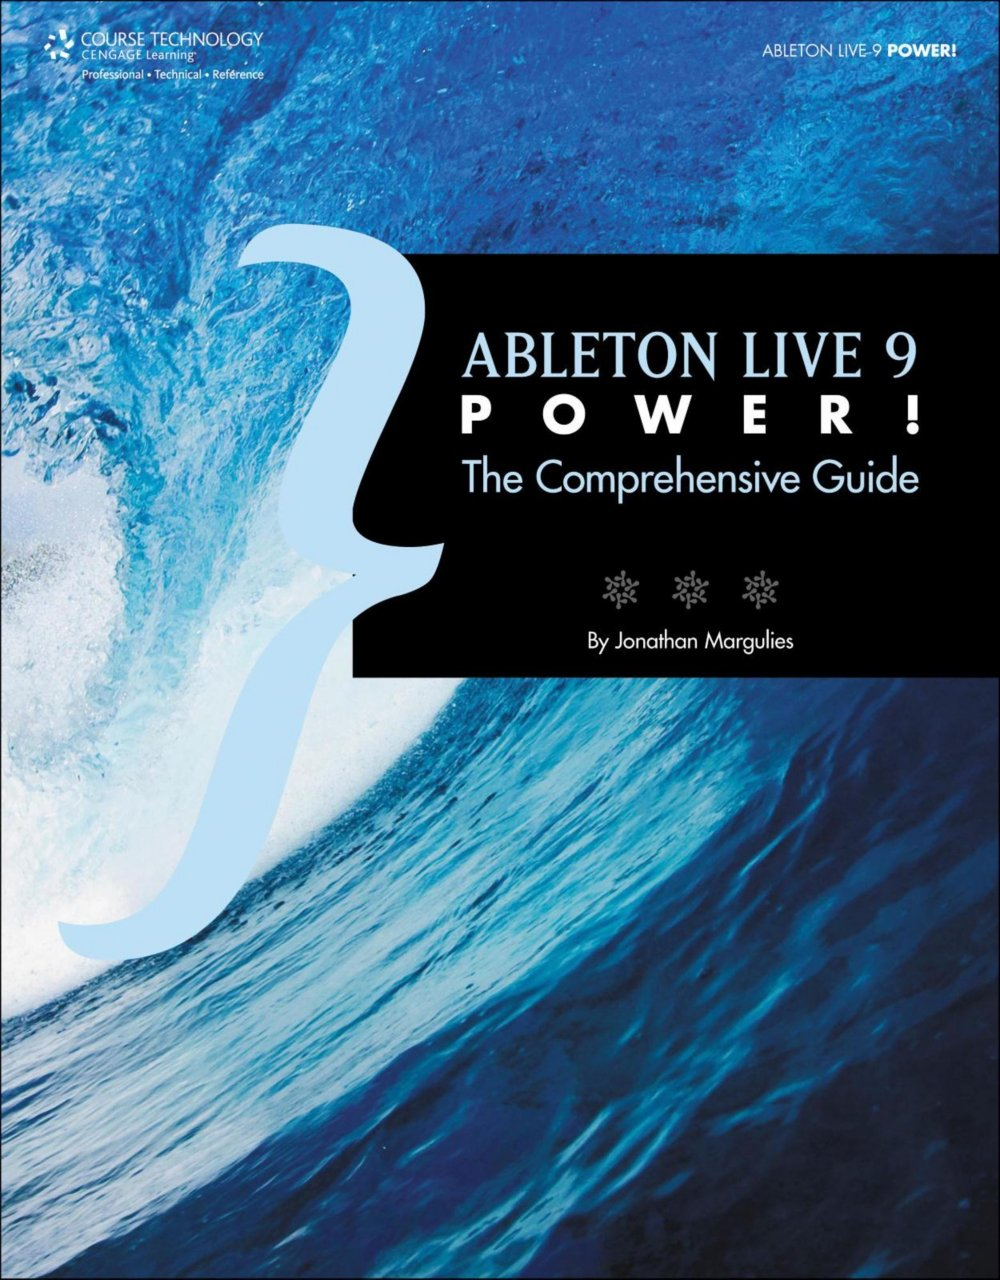 Cengage Learning Ableton Live 9 Power! The Comprehensive Guide Sheet music B00DND8KOY